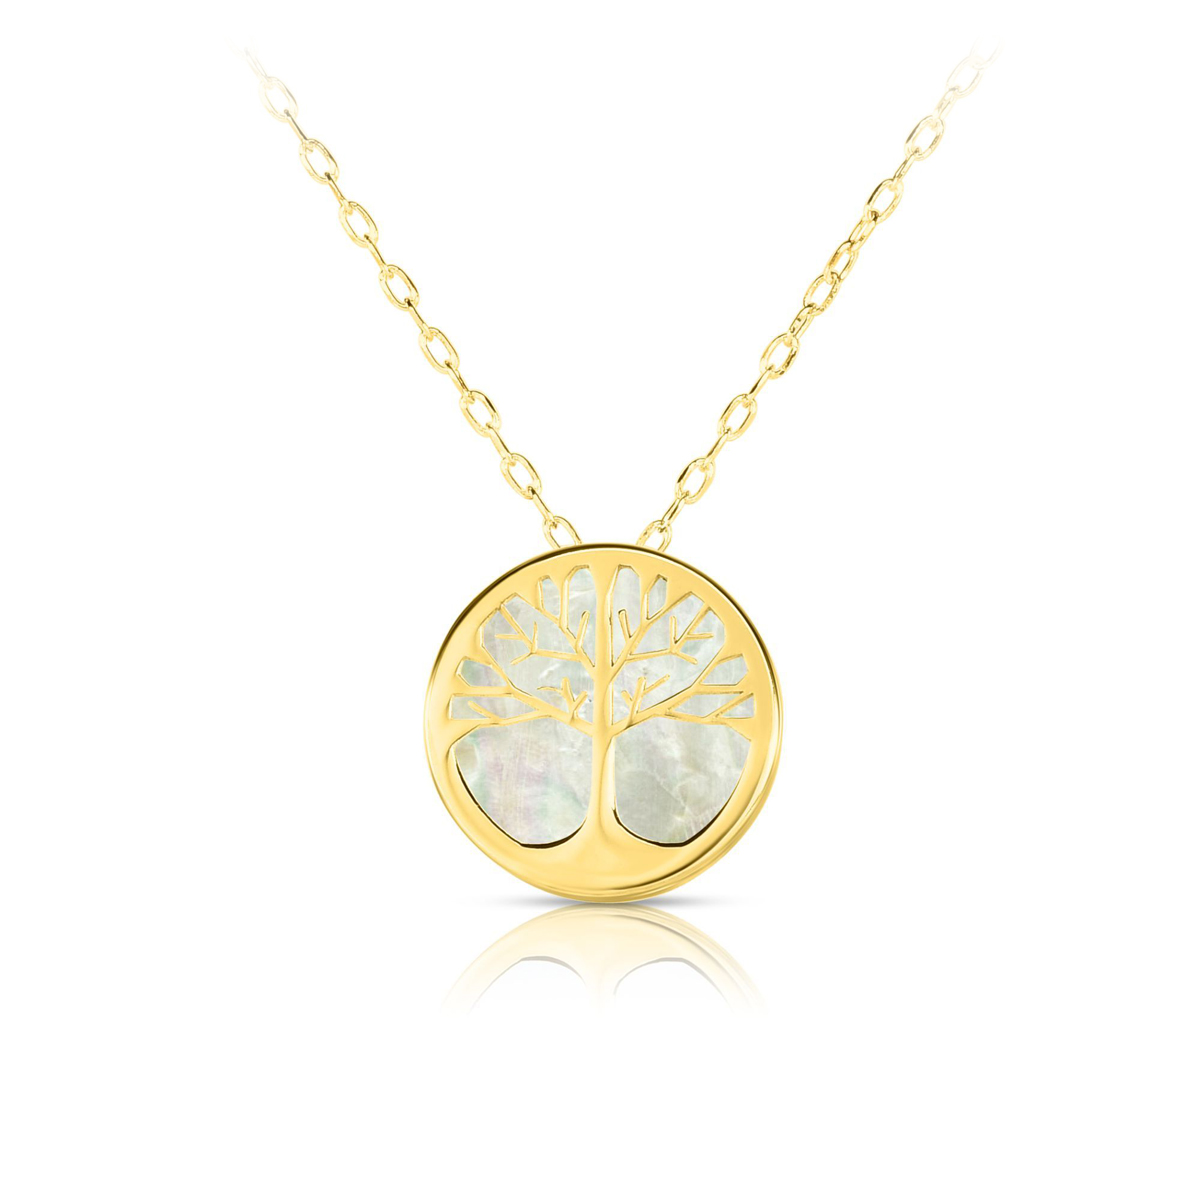 Royal Chain 14 Karat Yellow Gold Mother of Pearl Tree of Life Pendant Necklace